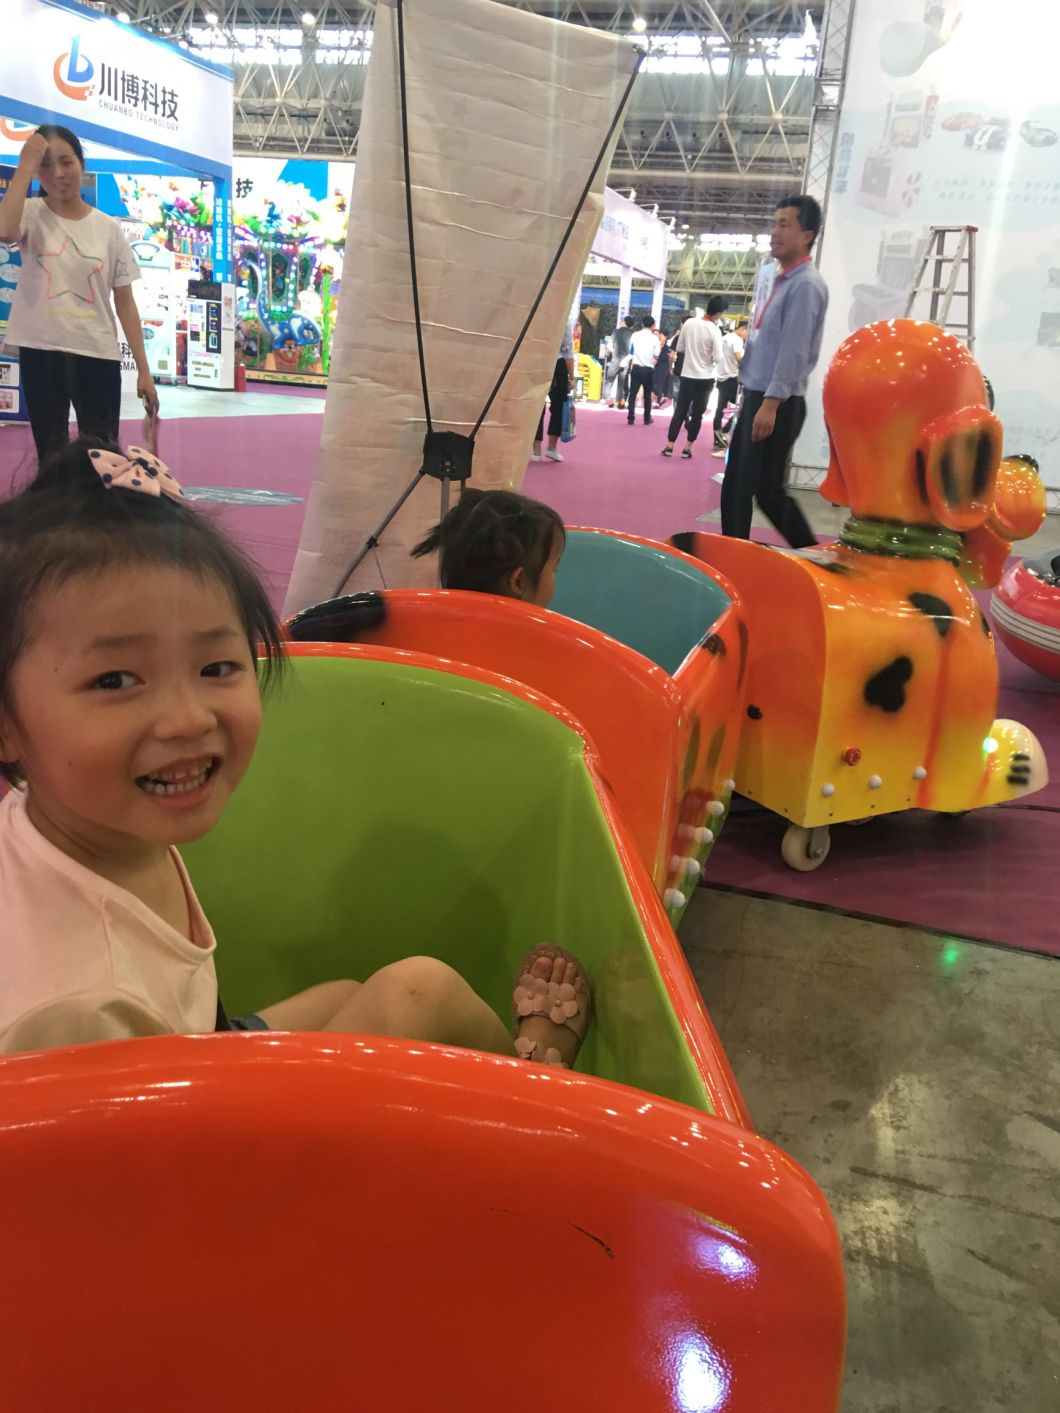 Kiddie Ride Electric Train in Amusement Park